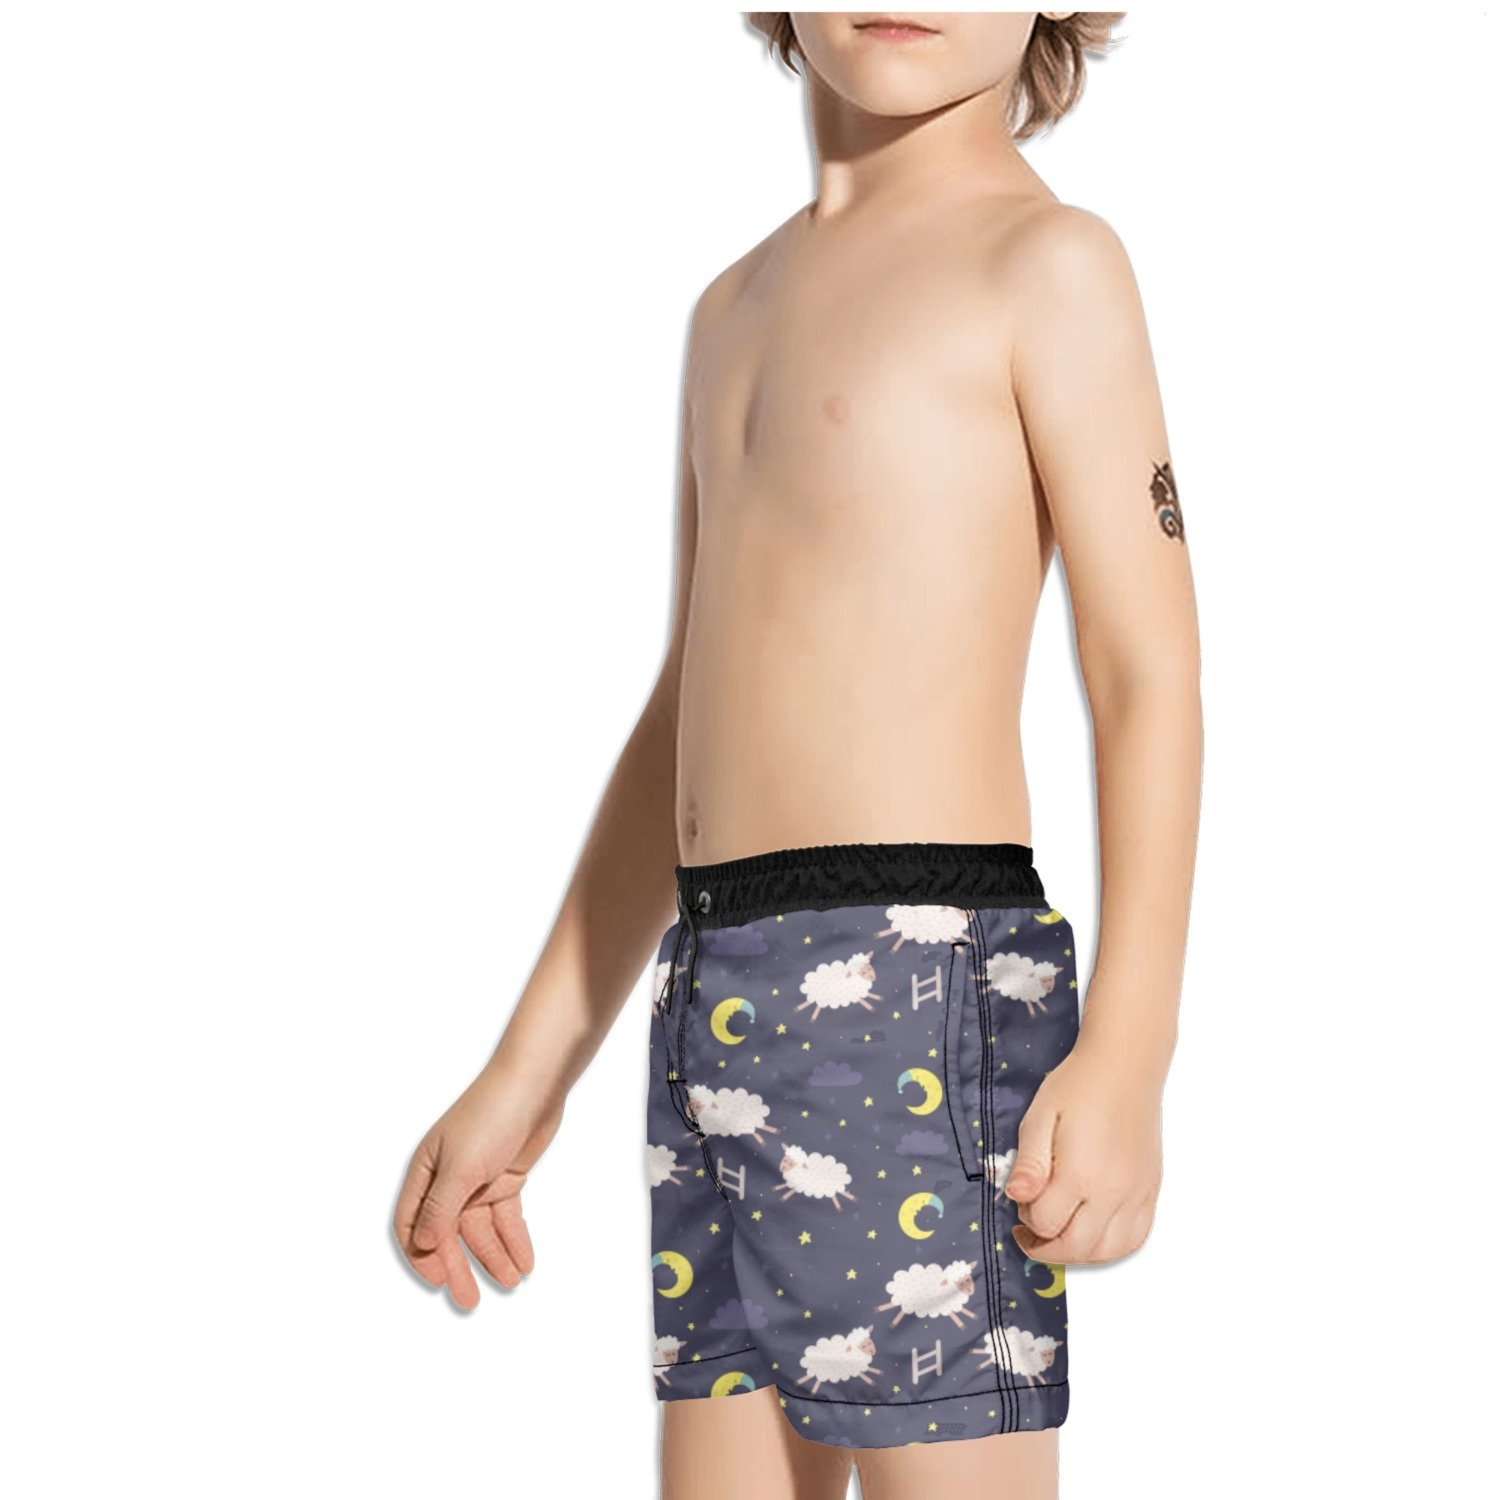 Ouxioaz Boys Swim Trunk I Just Freaking Love Goats Beach Board Shorts